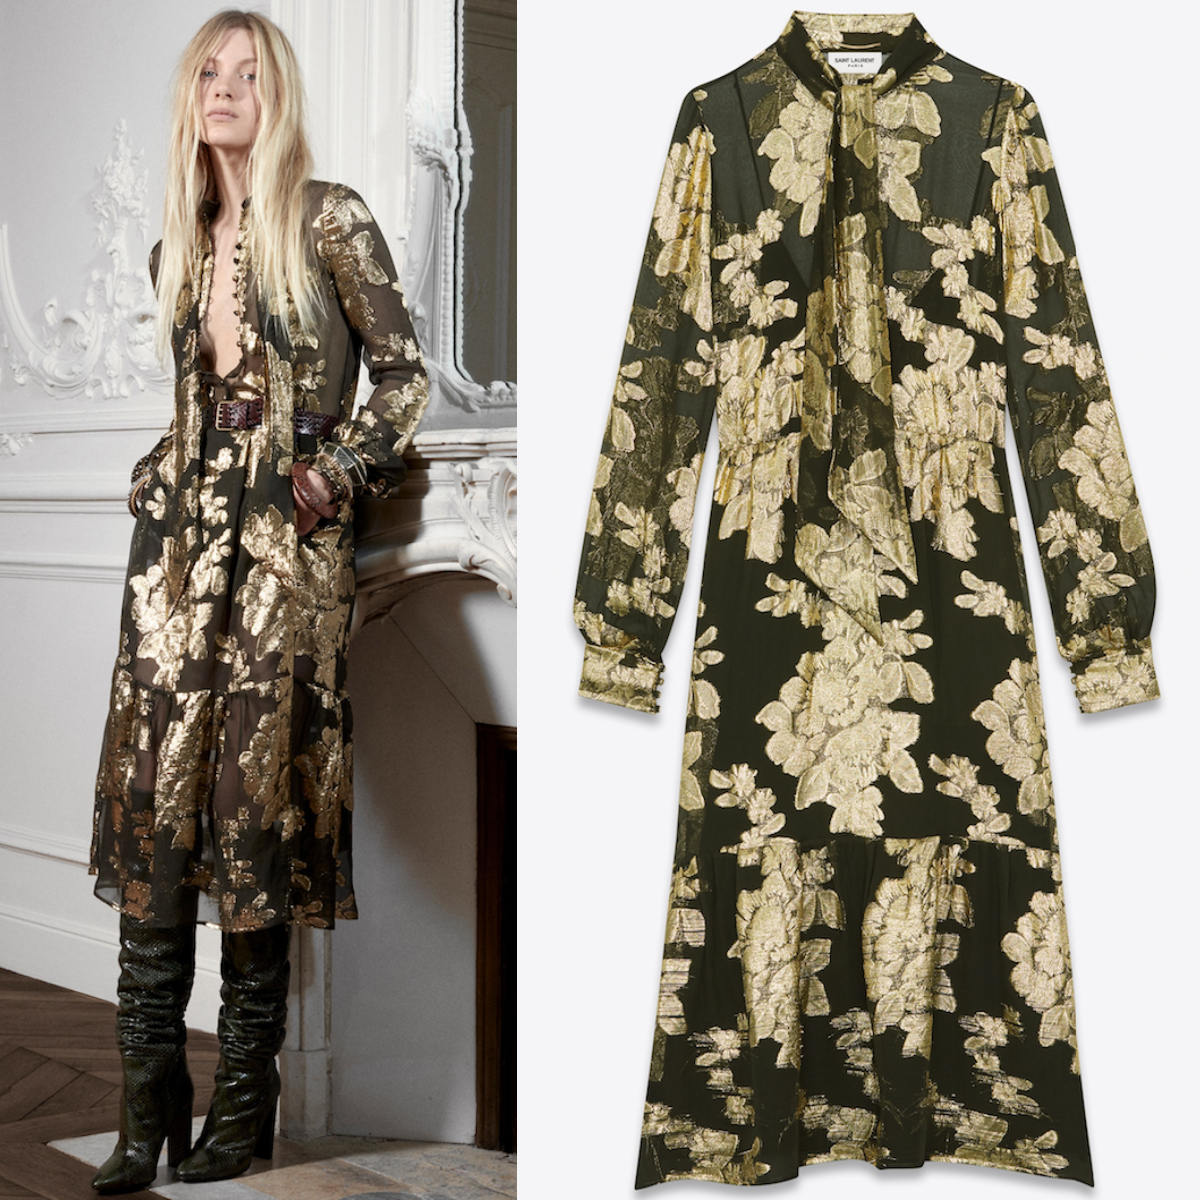 WSL1667 LAVALLIERE-NECK DRESS IN FLORAL LAME SILK GEORGETTE (Saint Laurent/ワンピース) 614419Y7A103268